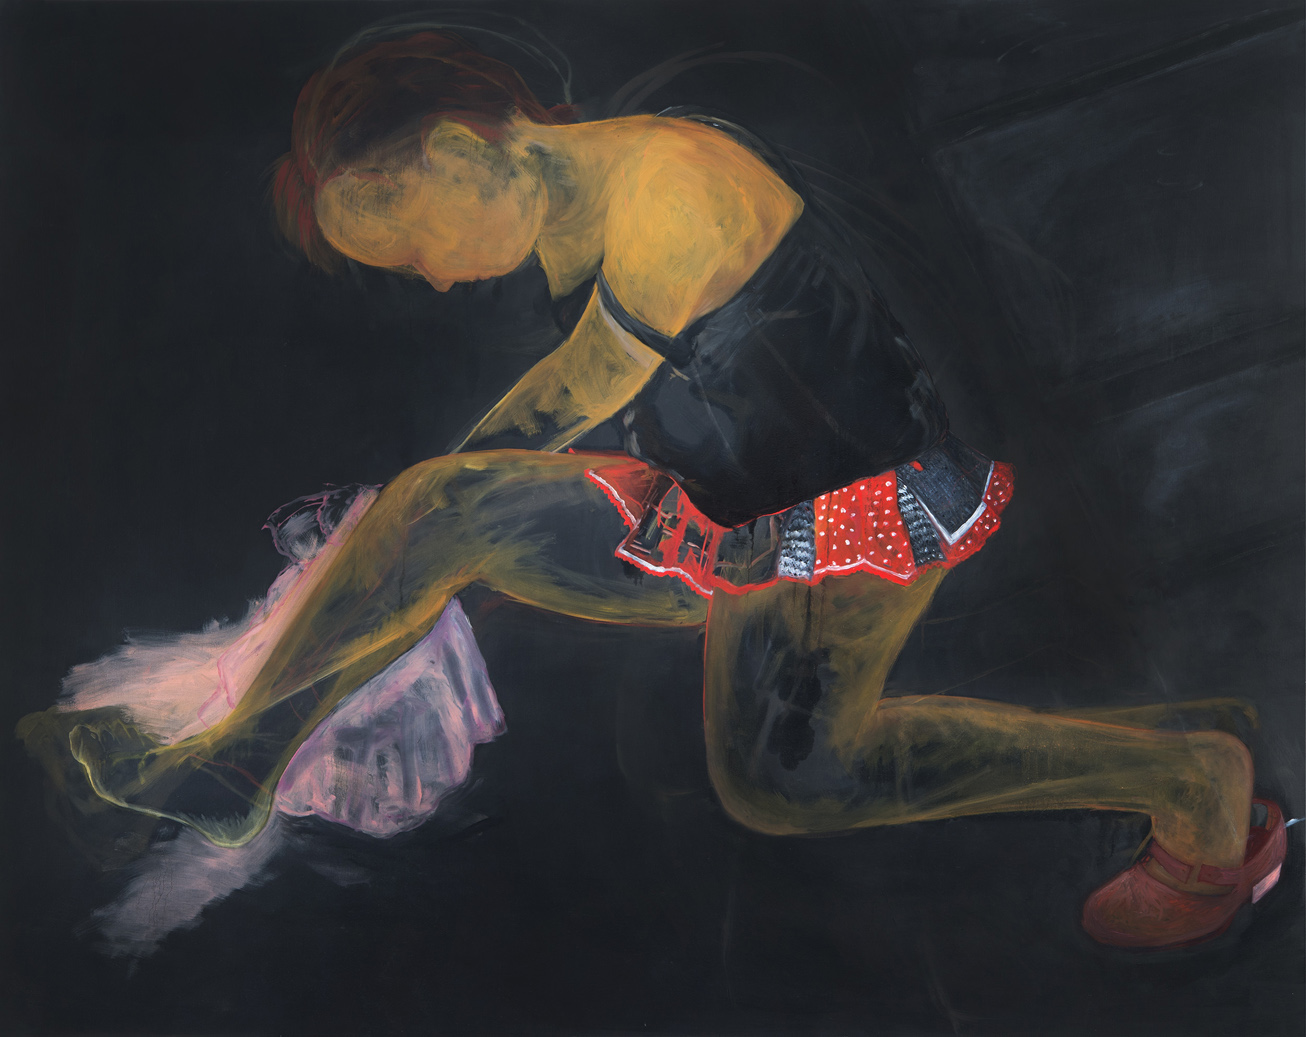 Williamson-Satin Doll, 2015, oil on linen, 48 x 60 inches